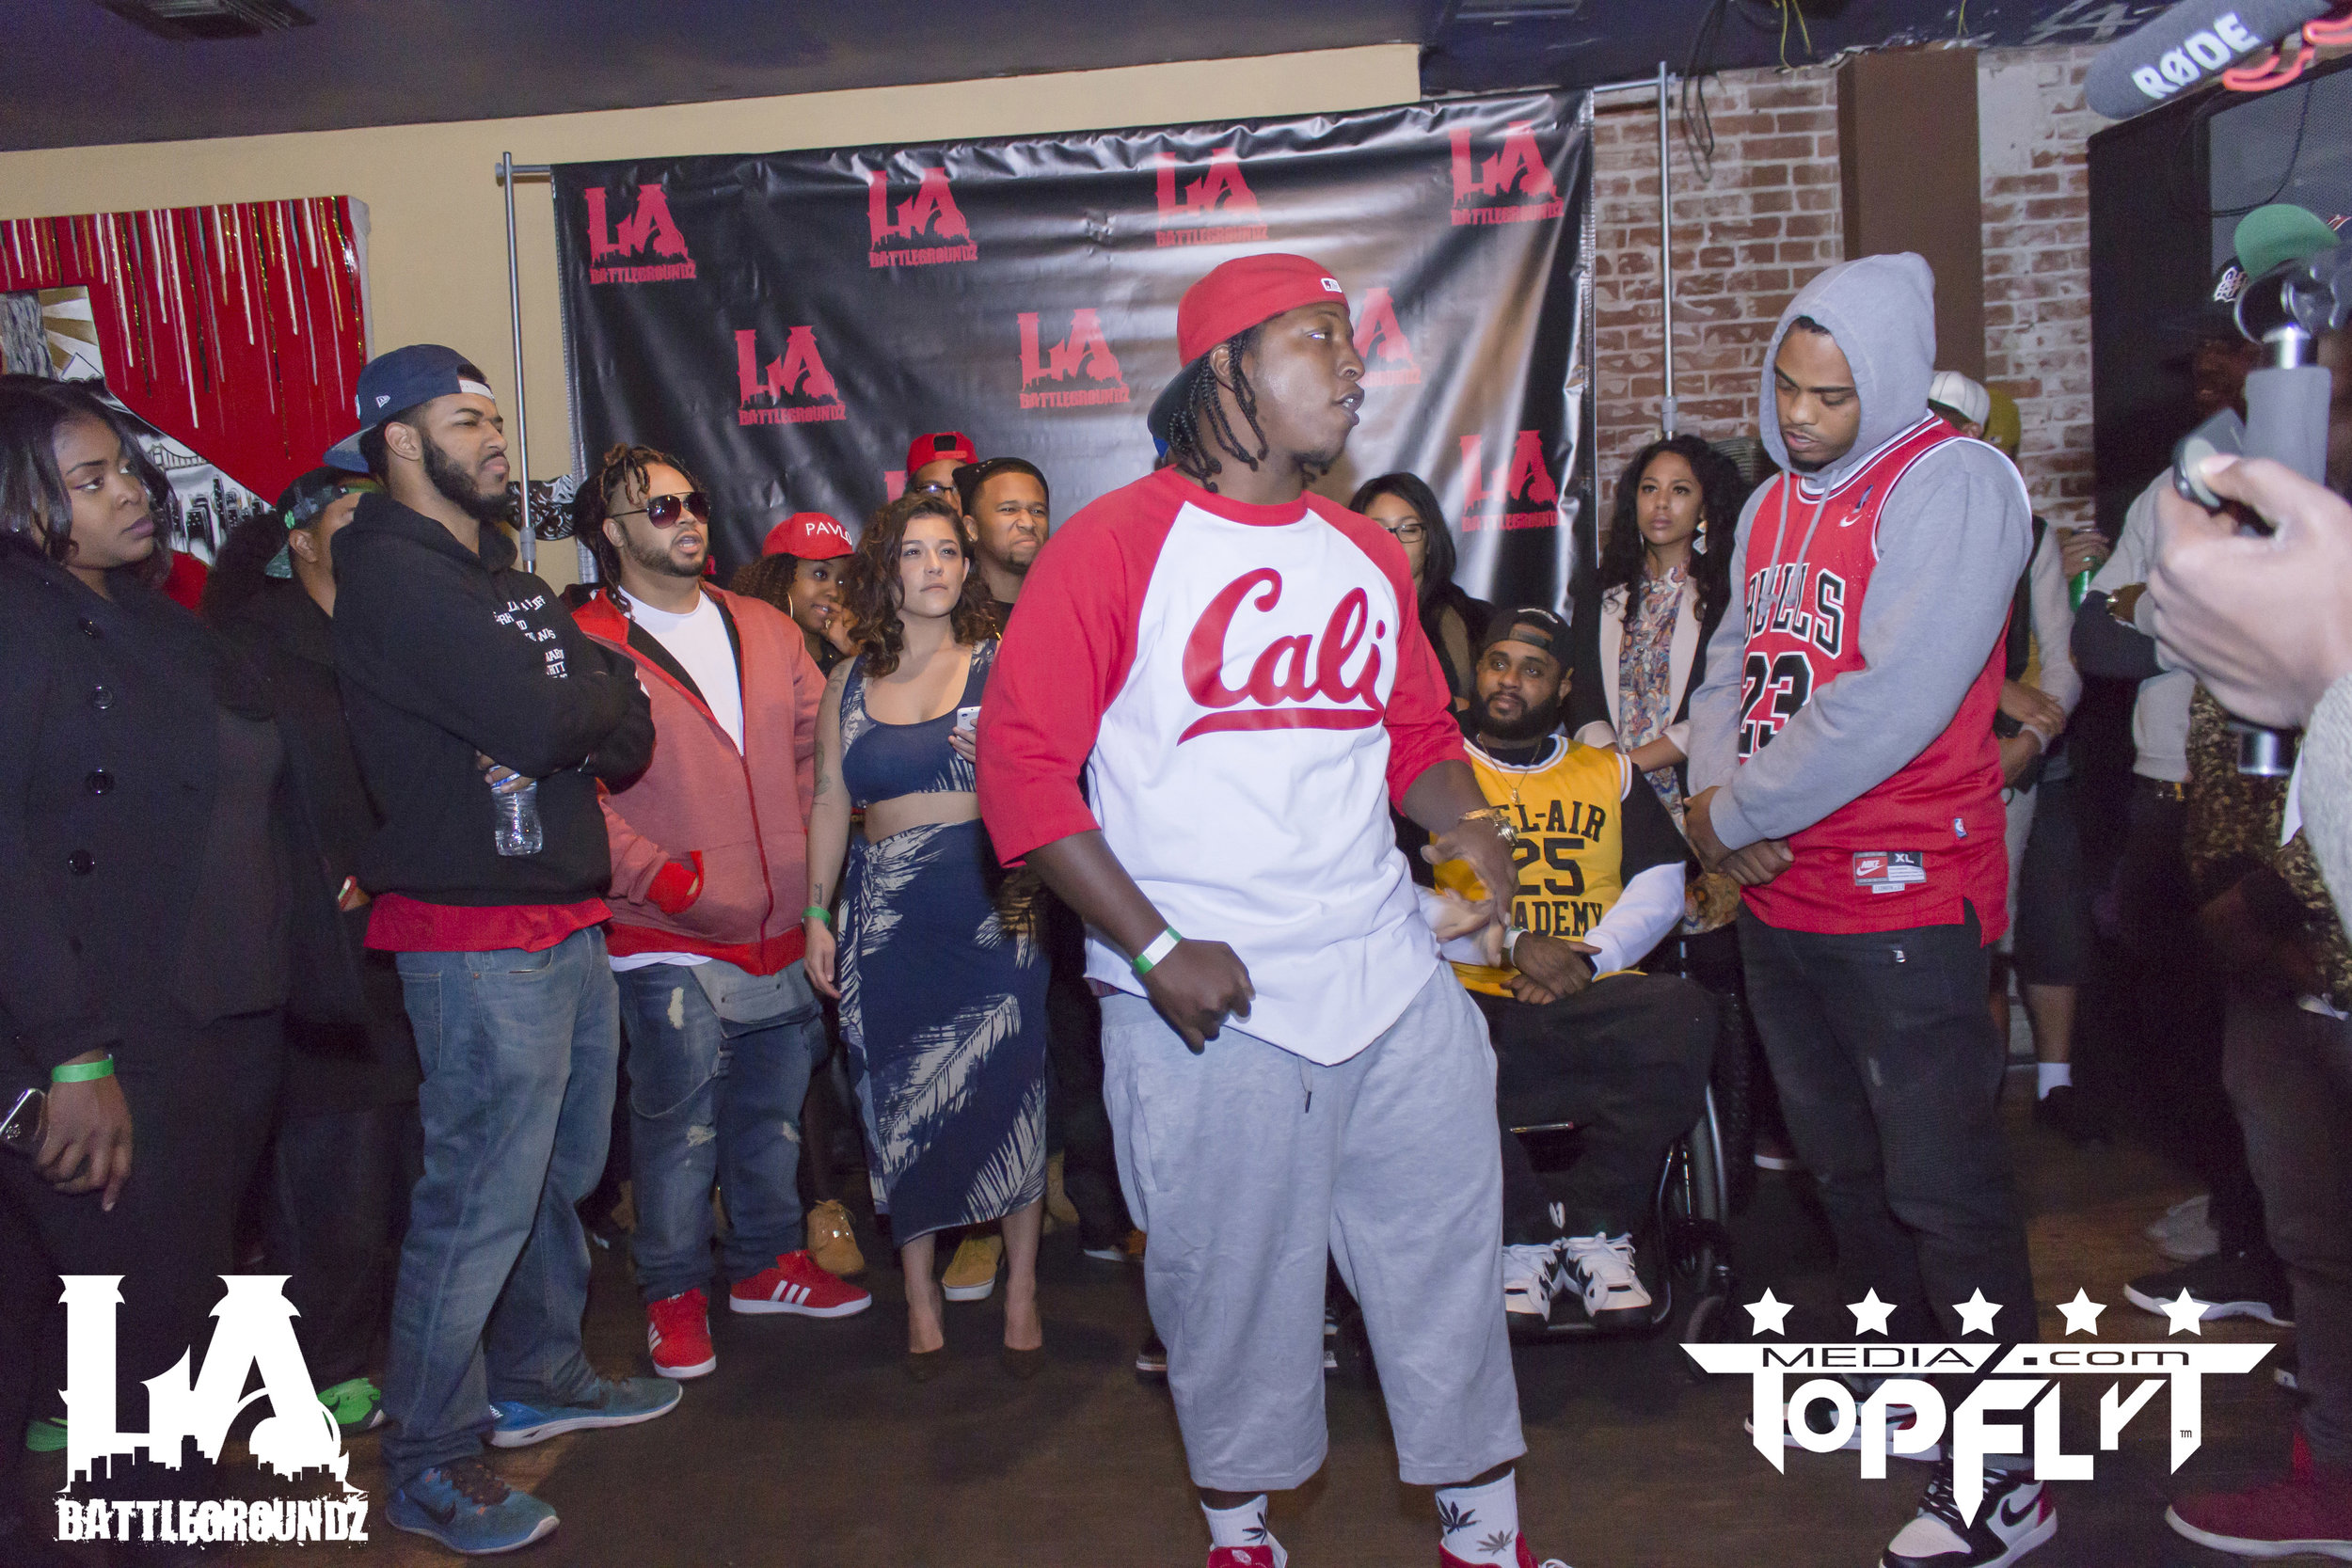 LA Battlegroundz - Decembarfest - The Christening_32.jpg